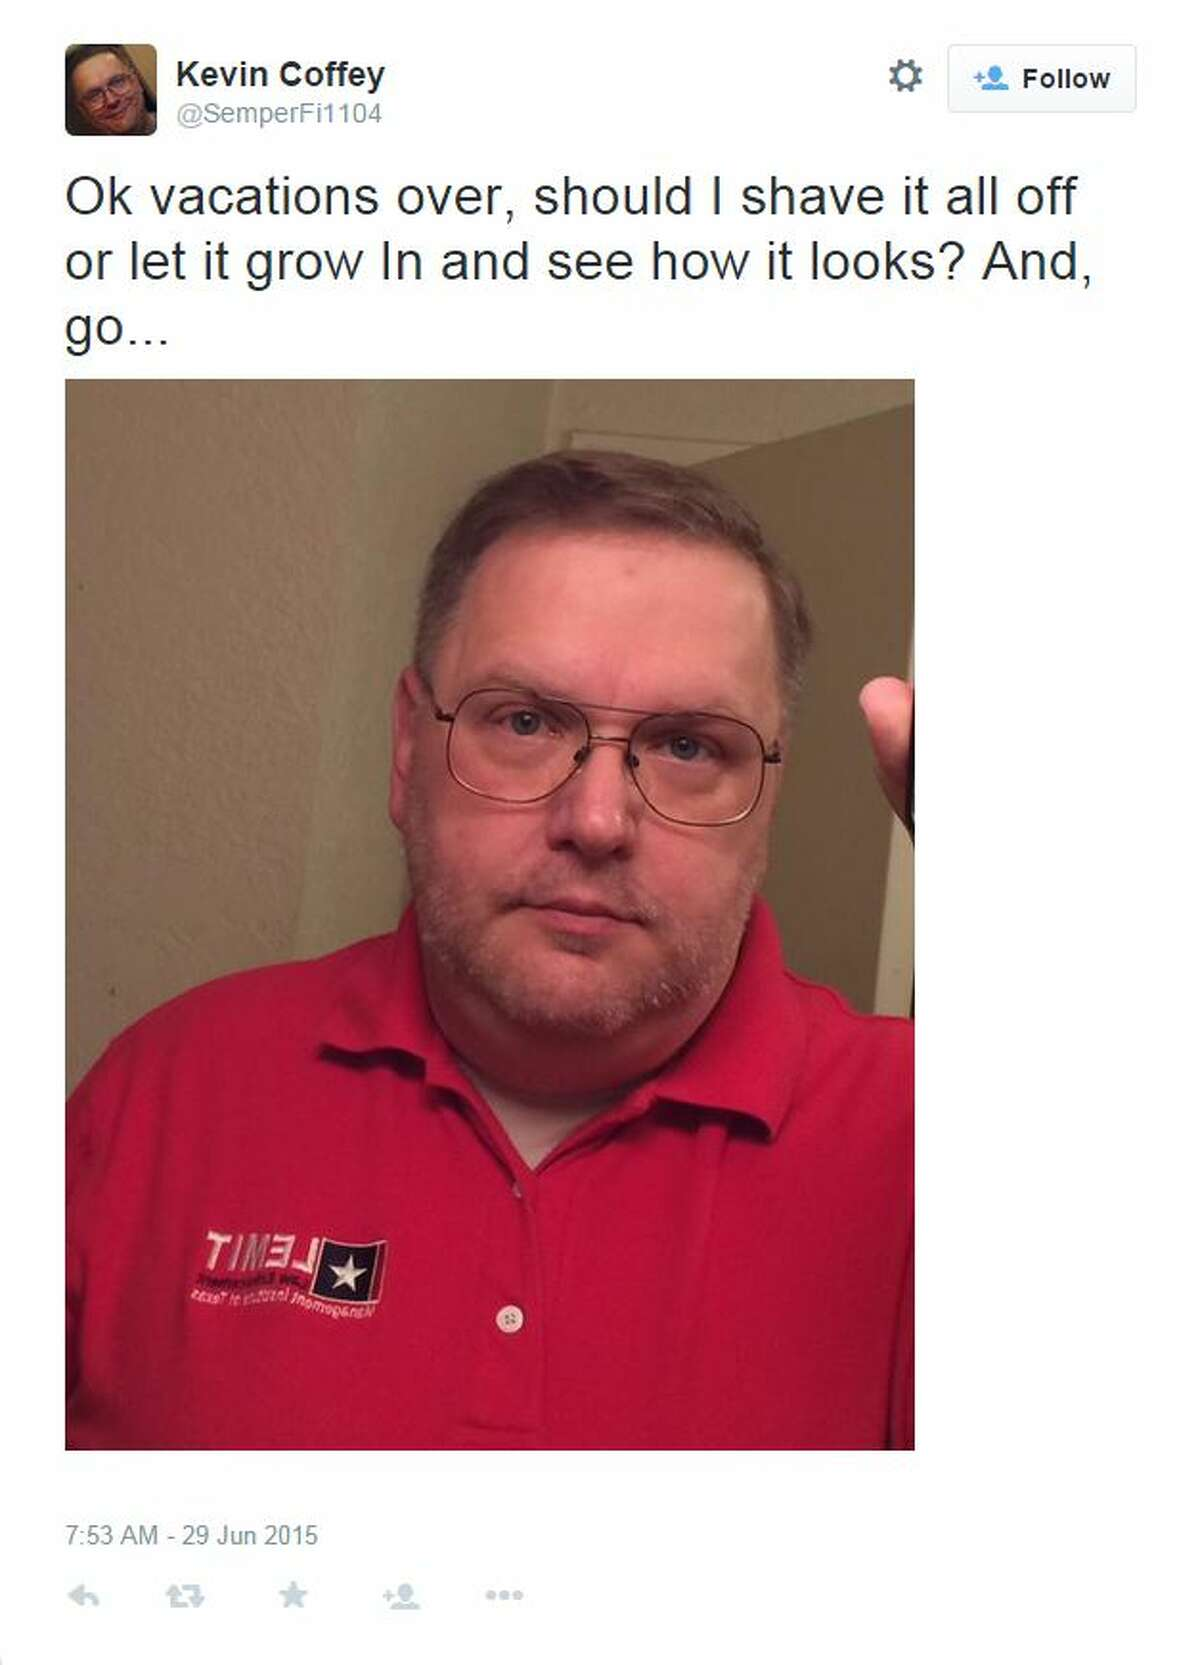 The 16-year-old girl has accused Maypearl Police Chief Kevin Coffey, 49, of sending her explicit messages on Facebook and on her phone and making inappropriate comments about her body over the course of two years.